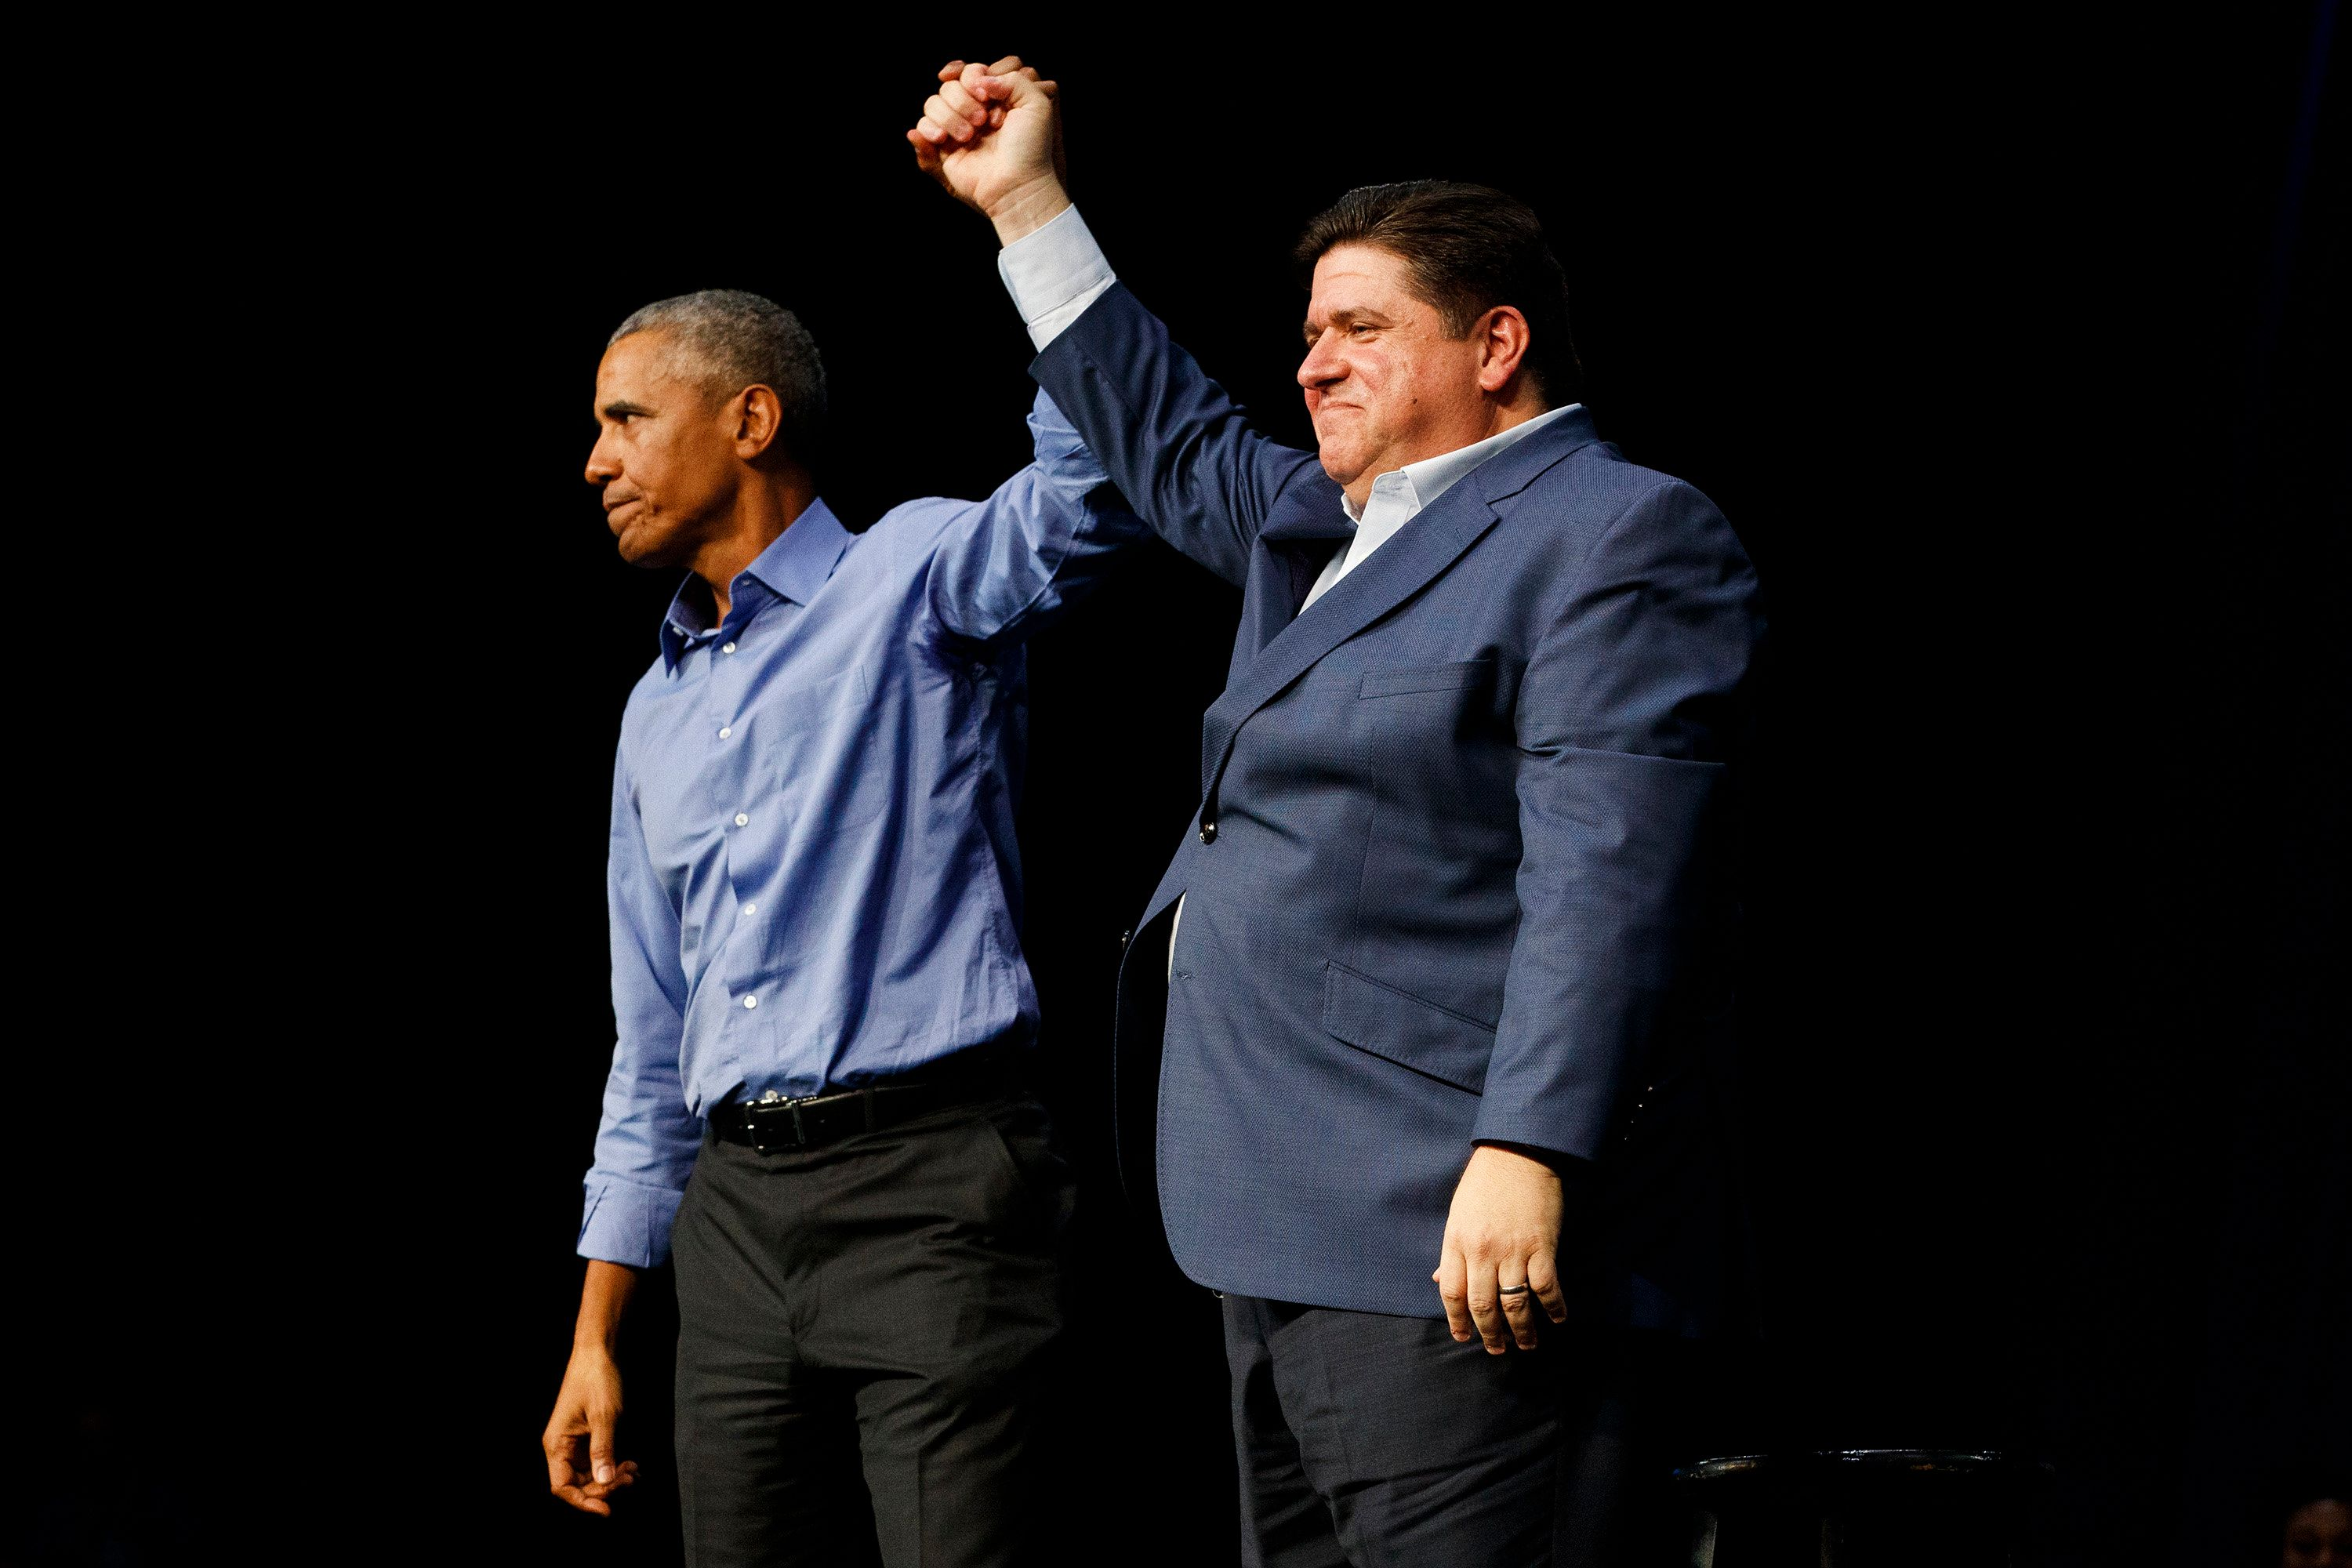 J.B. Pritzker campaigned with former president Barack Obama in the closing days of his successful gubernatorial campaign.